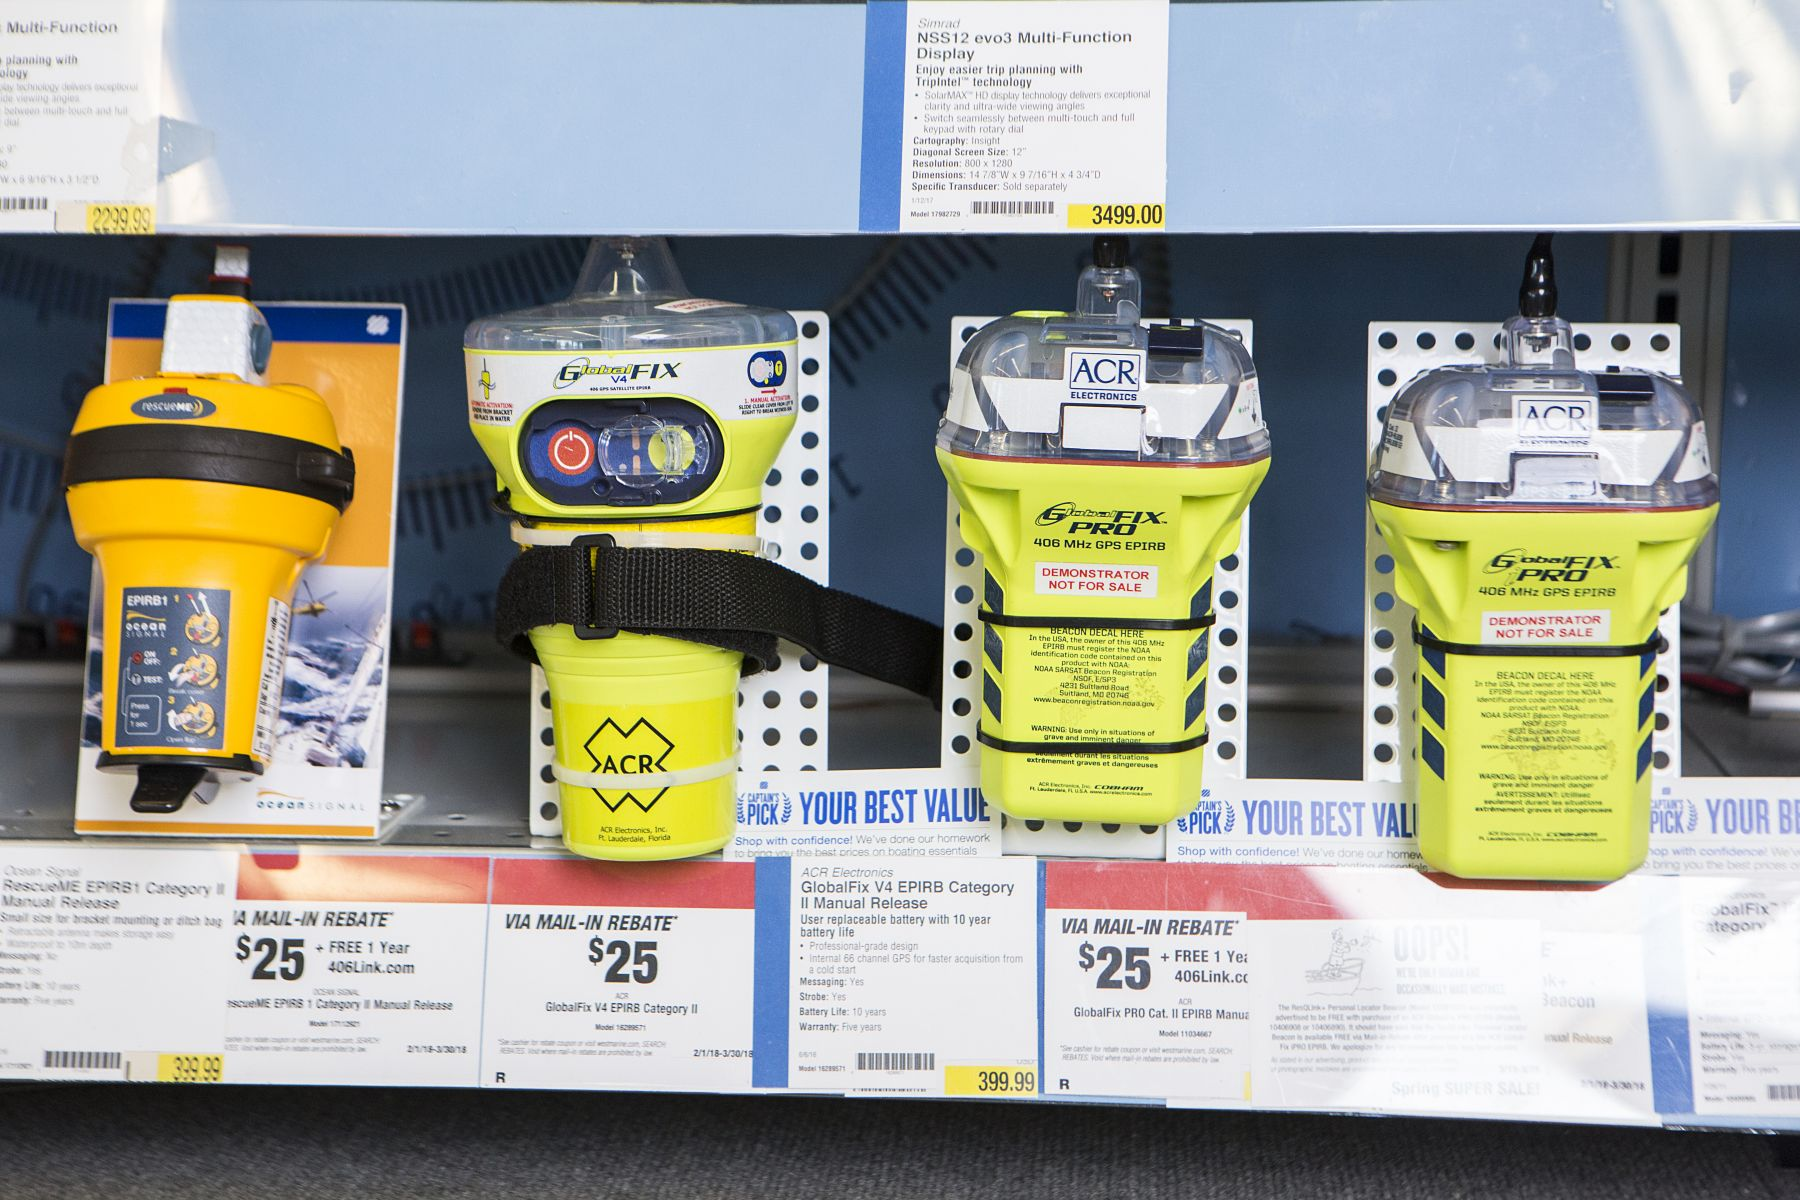 EPIRB's (emergency position indicating radio beacon) on display at a retail outlet.